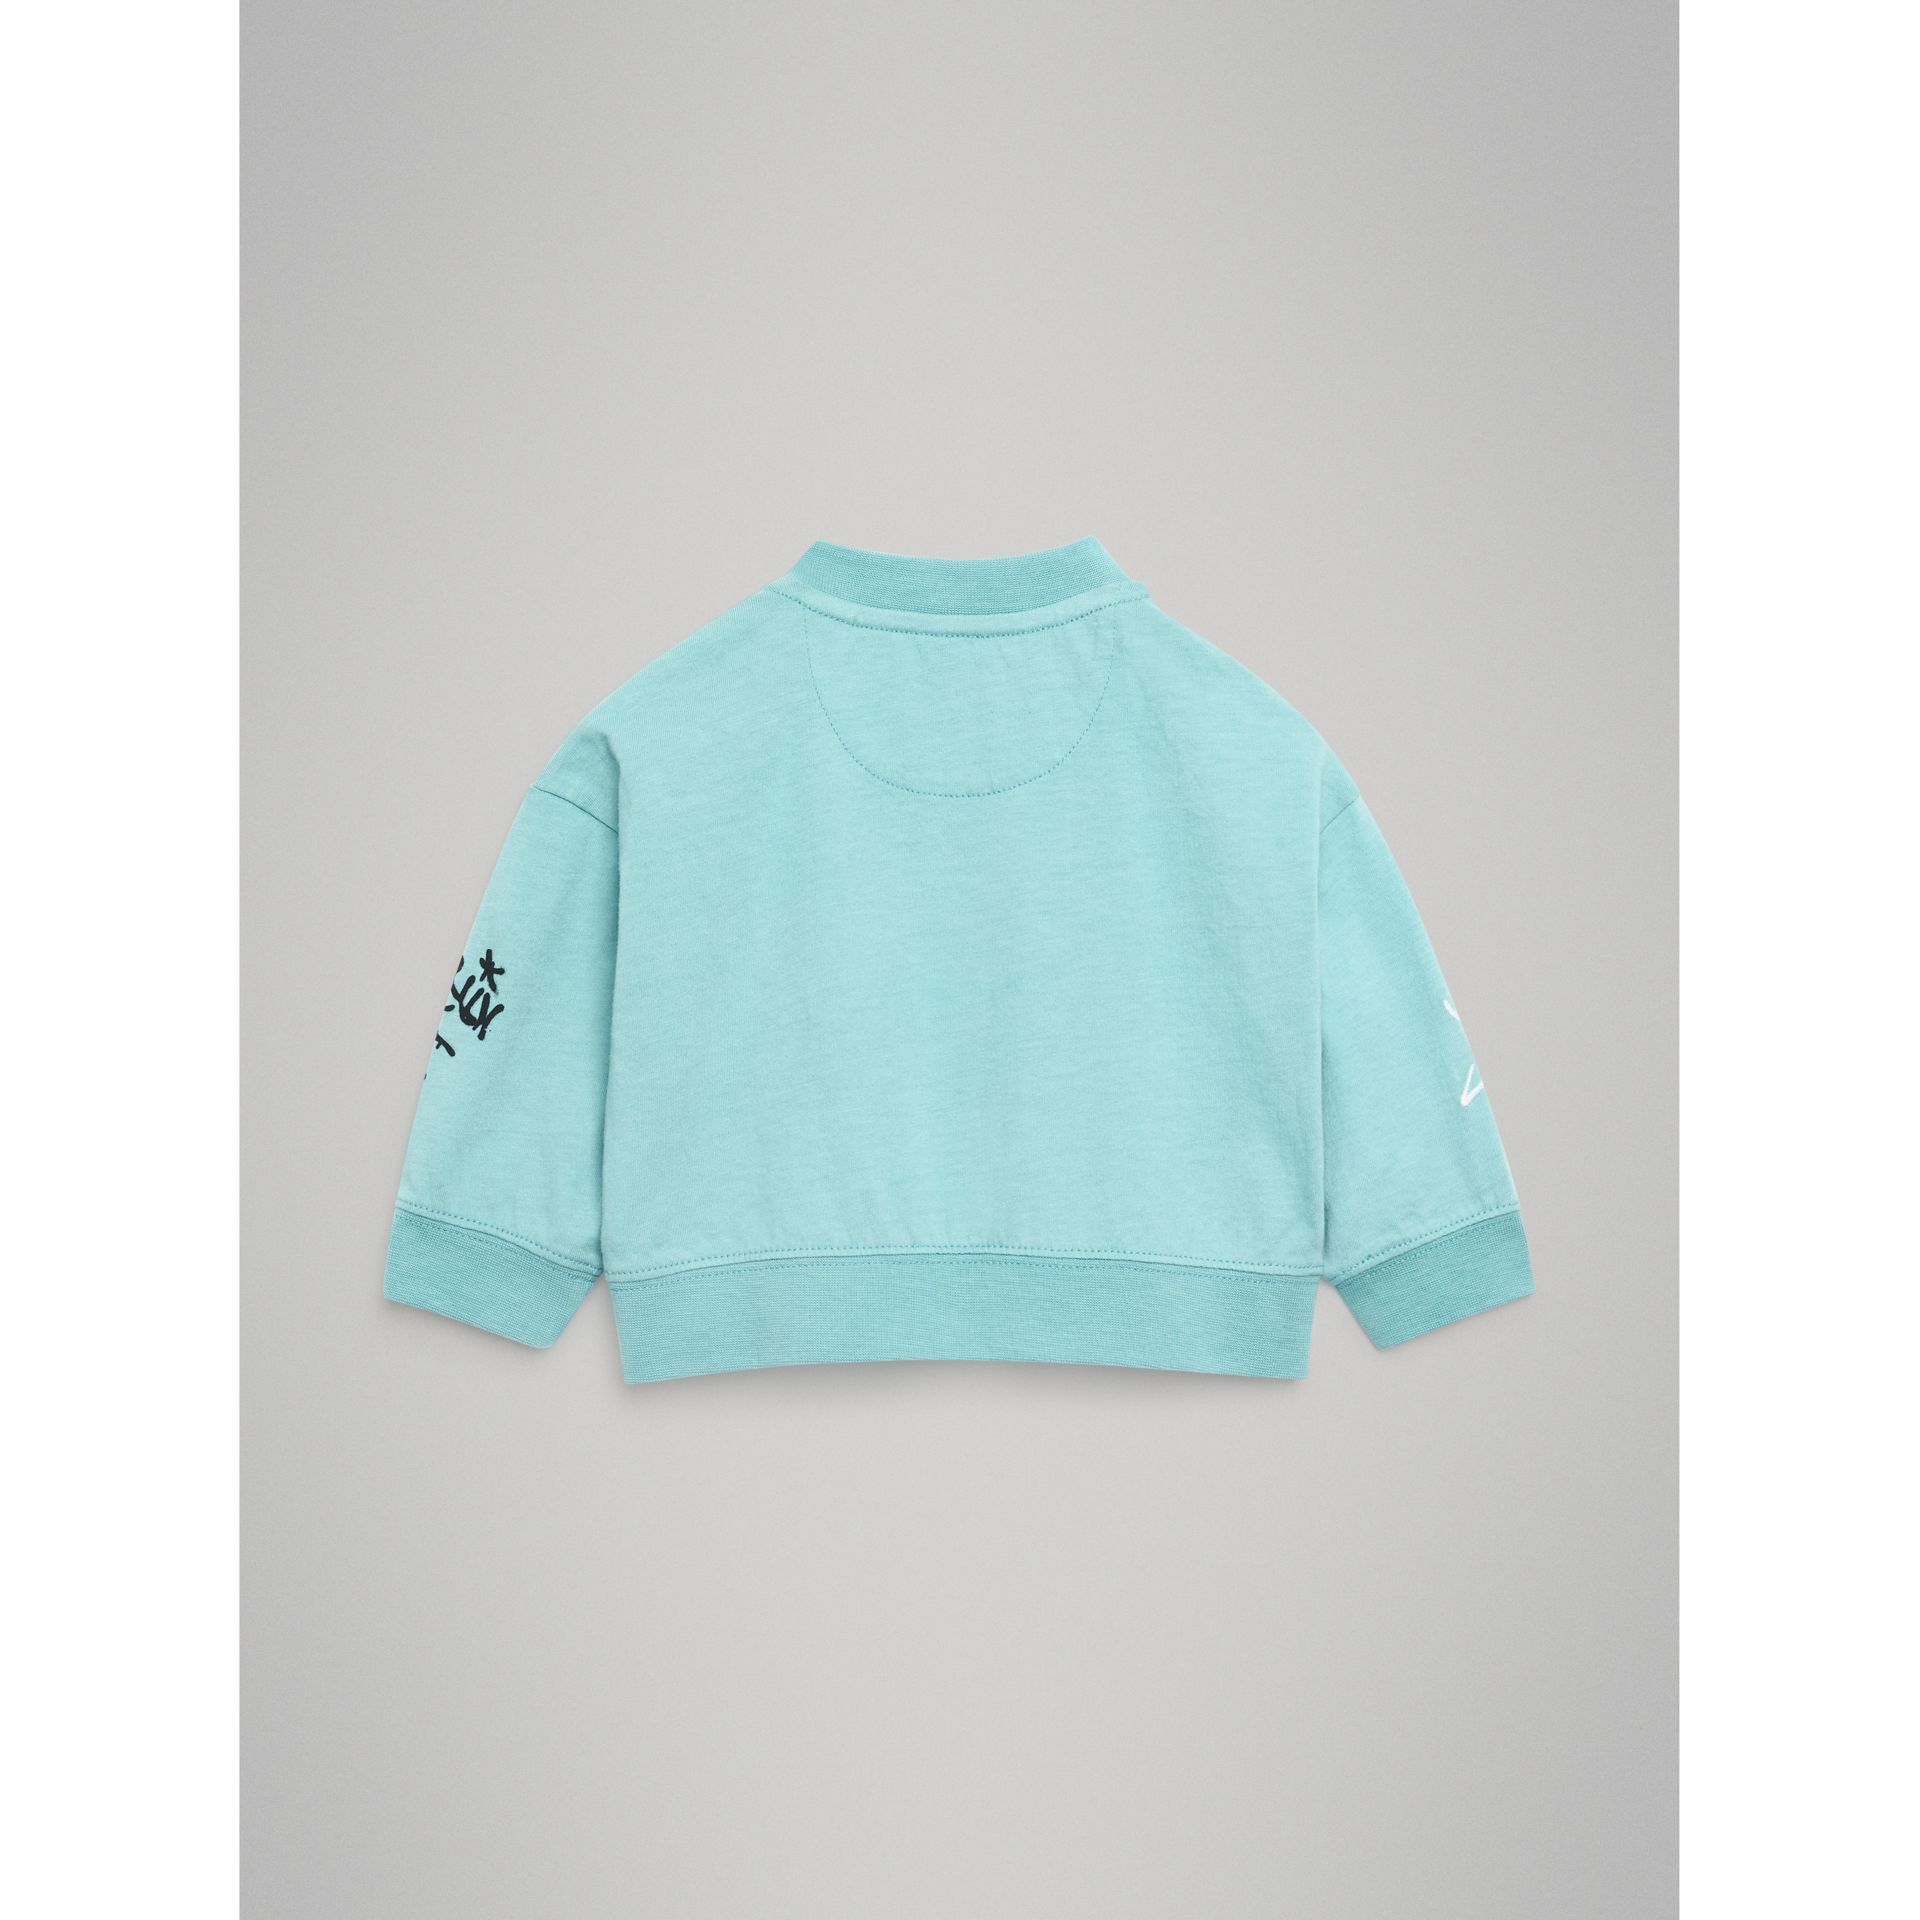 Forever is Now Print Cotton Sweatshirt in Turquoise - Children | Burberry United Kingdom - gallery image 3